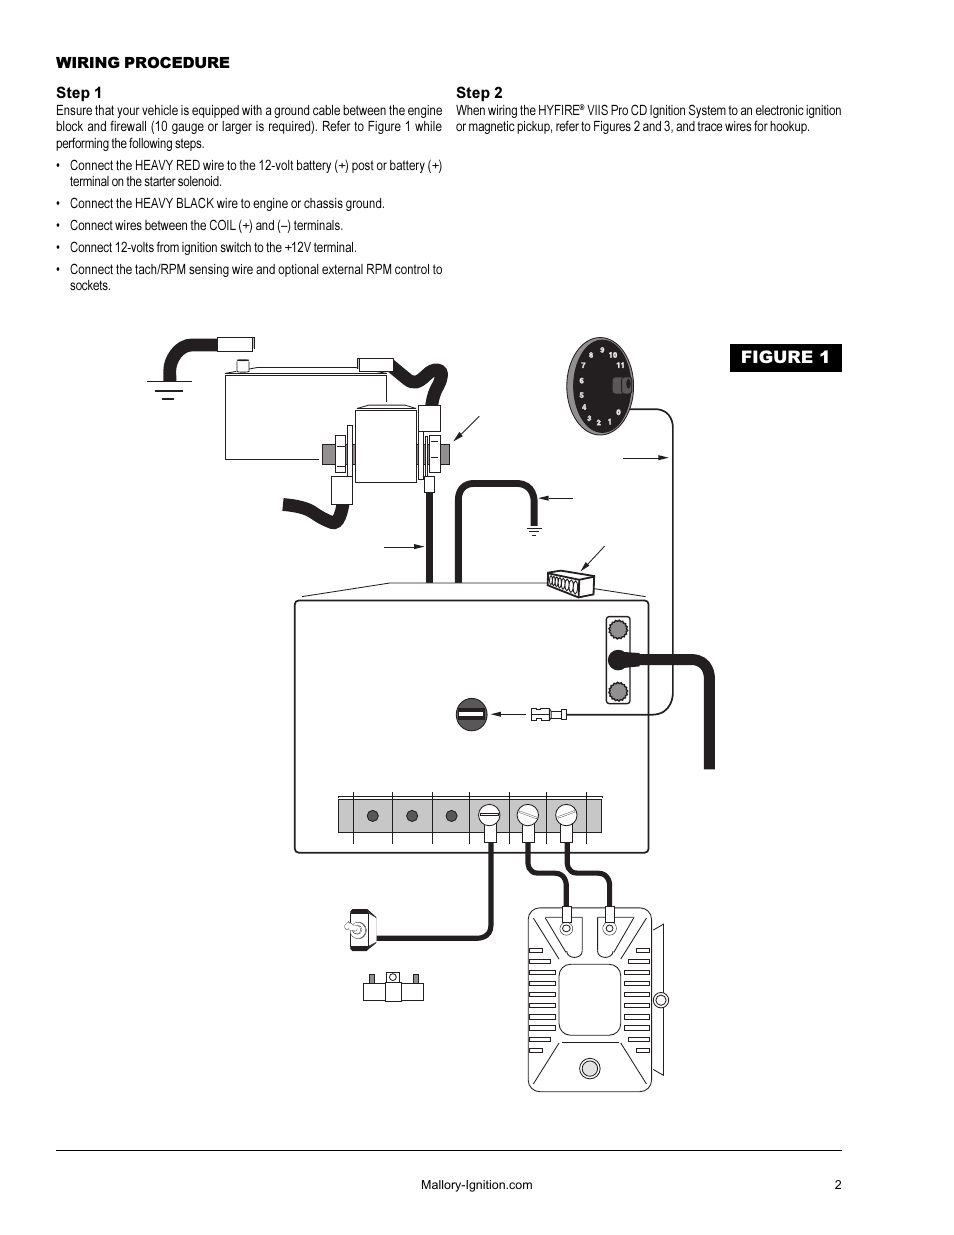 Mallory Ignition Tach Wiring Diagram | Best Wiring Liry on tel tach ii, tel tac oval track pro, tel tac 2 troubleshooting,